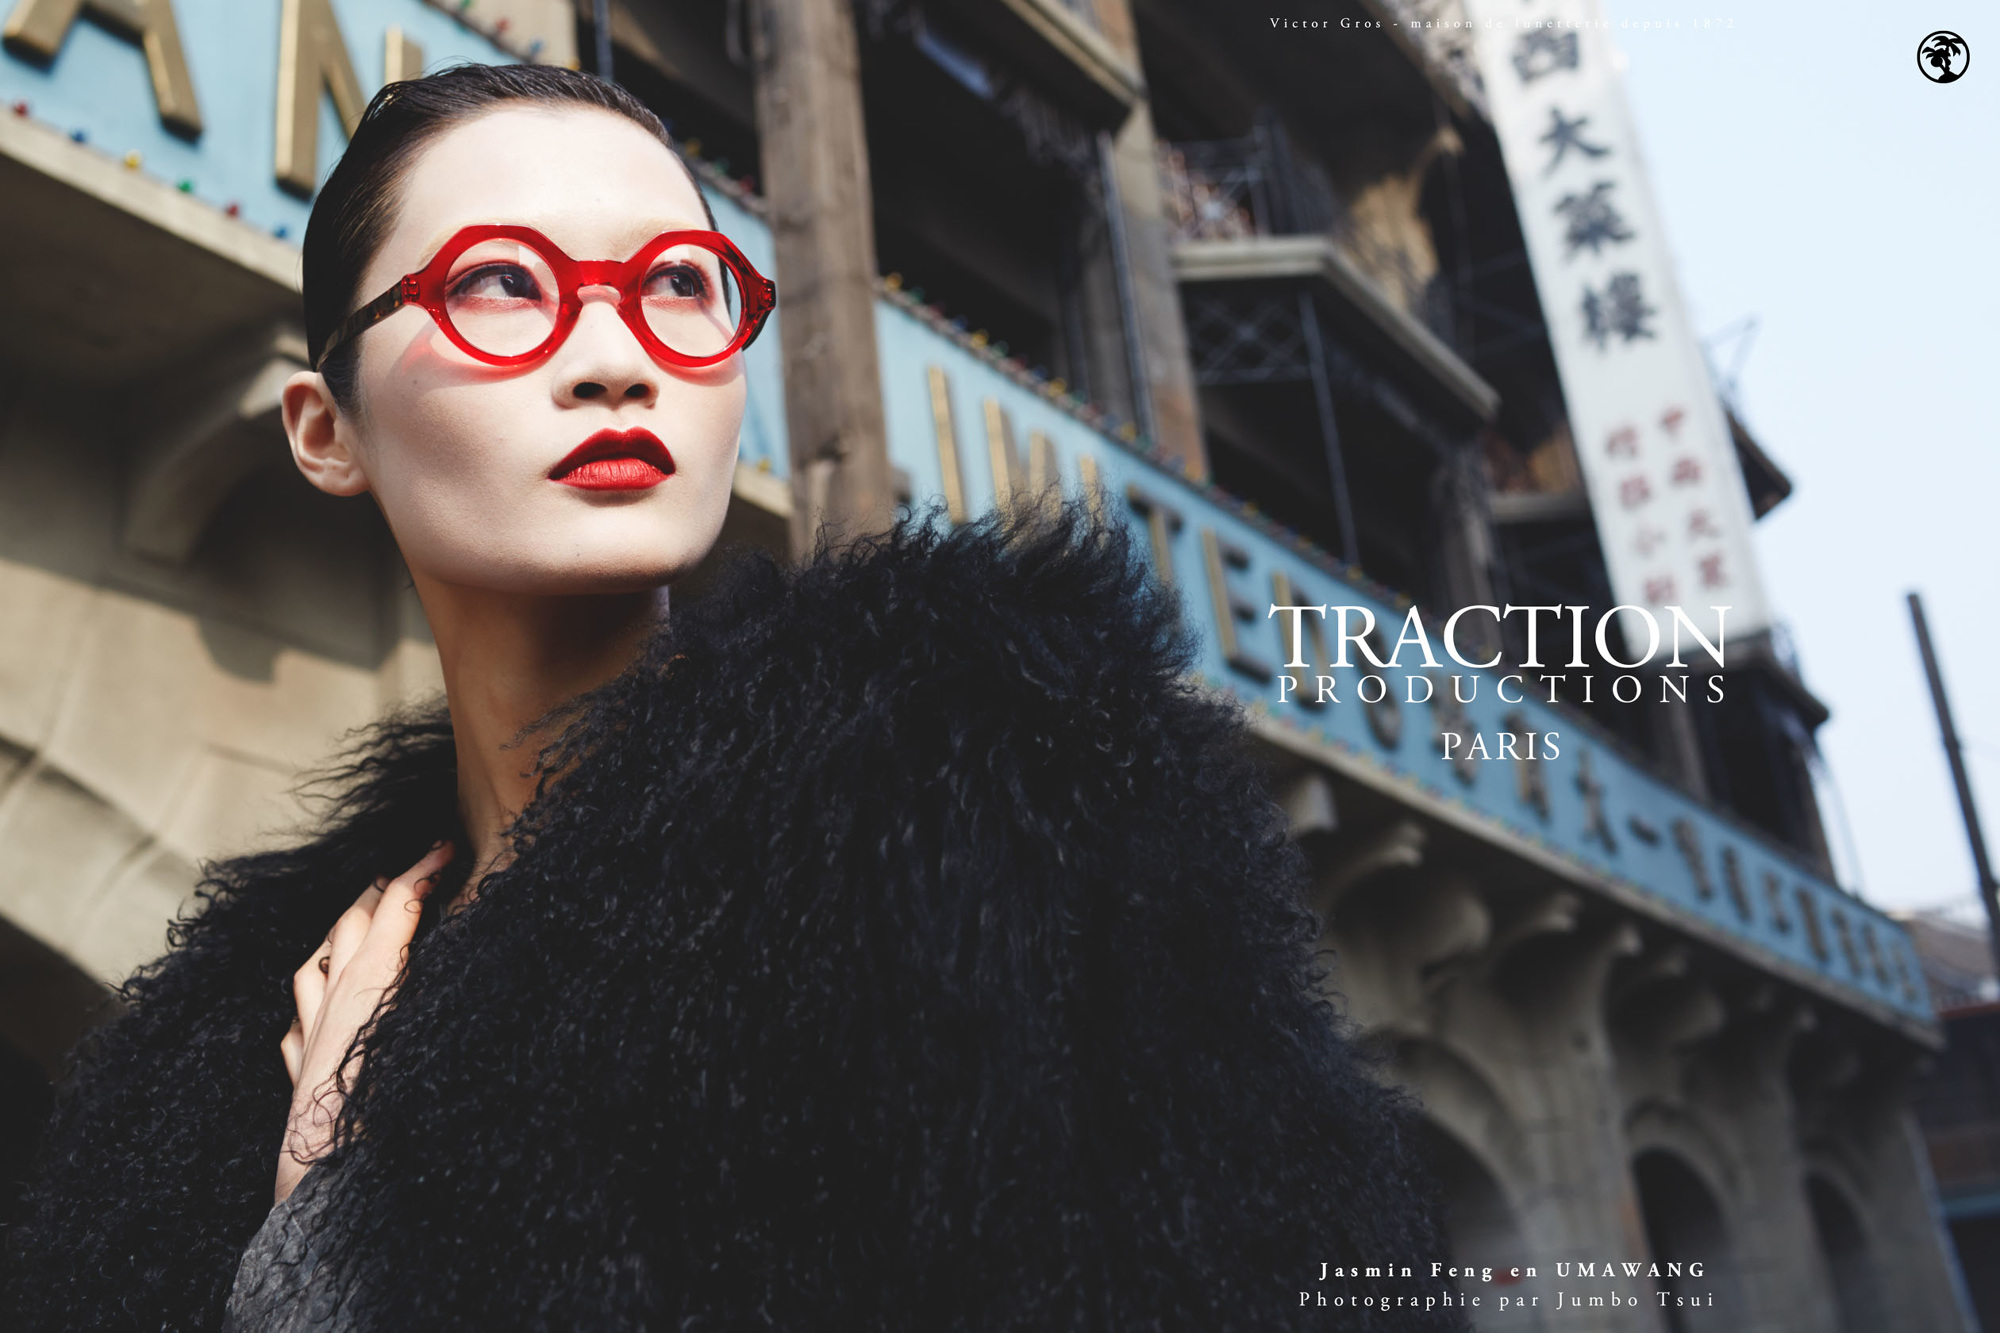 Traction Productions Paris 2015 Campaign